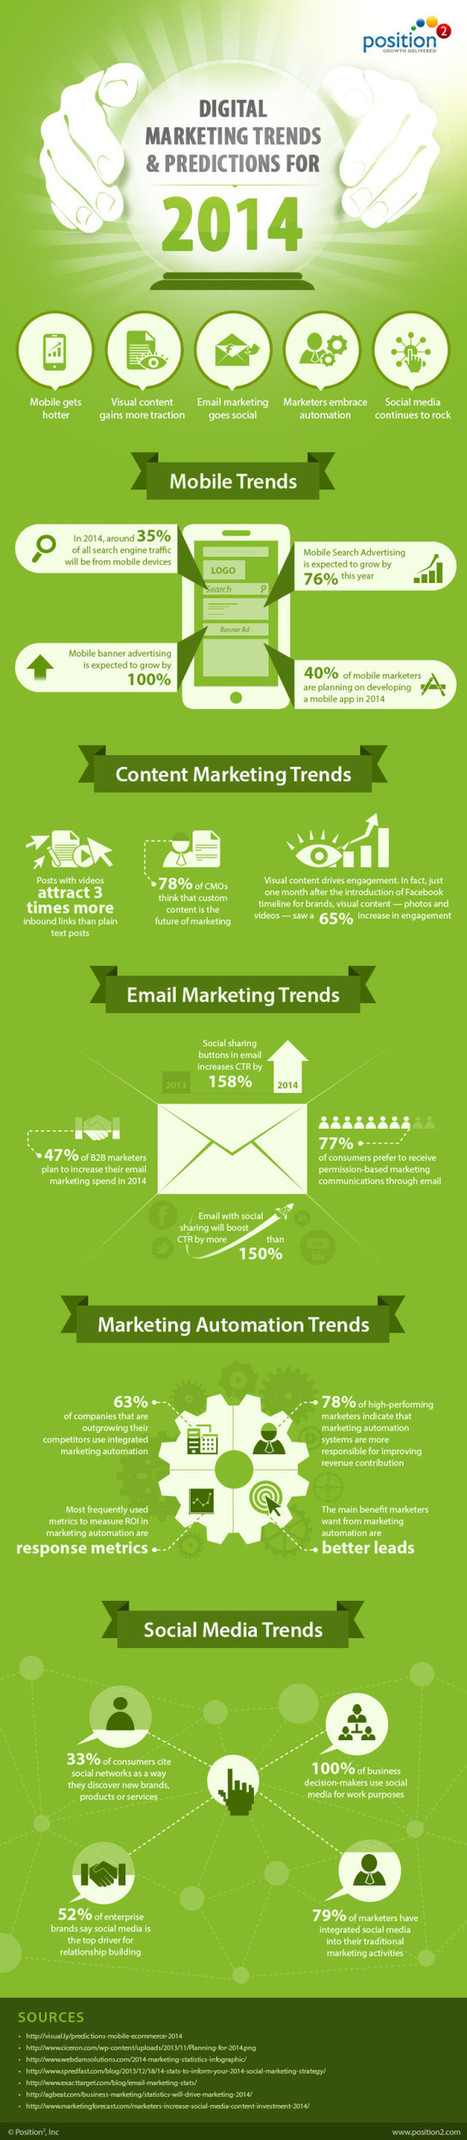 Infographic: Digital Marketing Trends & Predictions for 2014 - Marketing Technology Blog | mobile marketing | Scoop.it